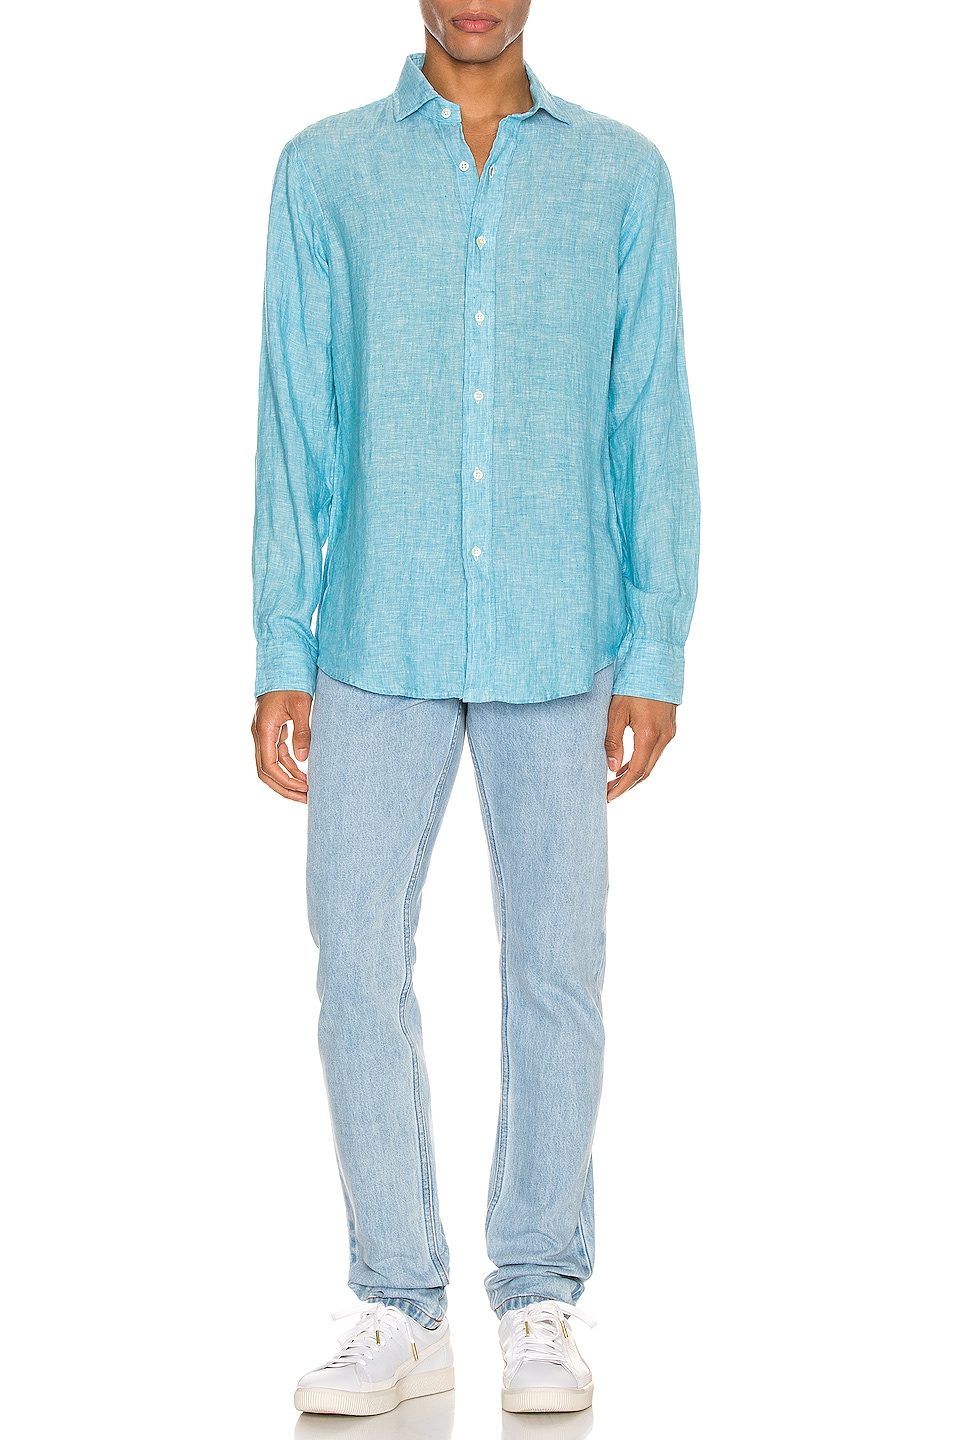 Image 4 of Polo Ralph Lauren Linen Chambray Long Sleeve Button Up Shirt in 4366F Turquoise